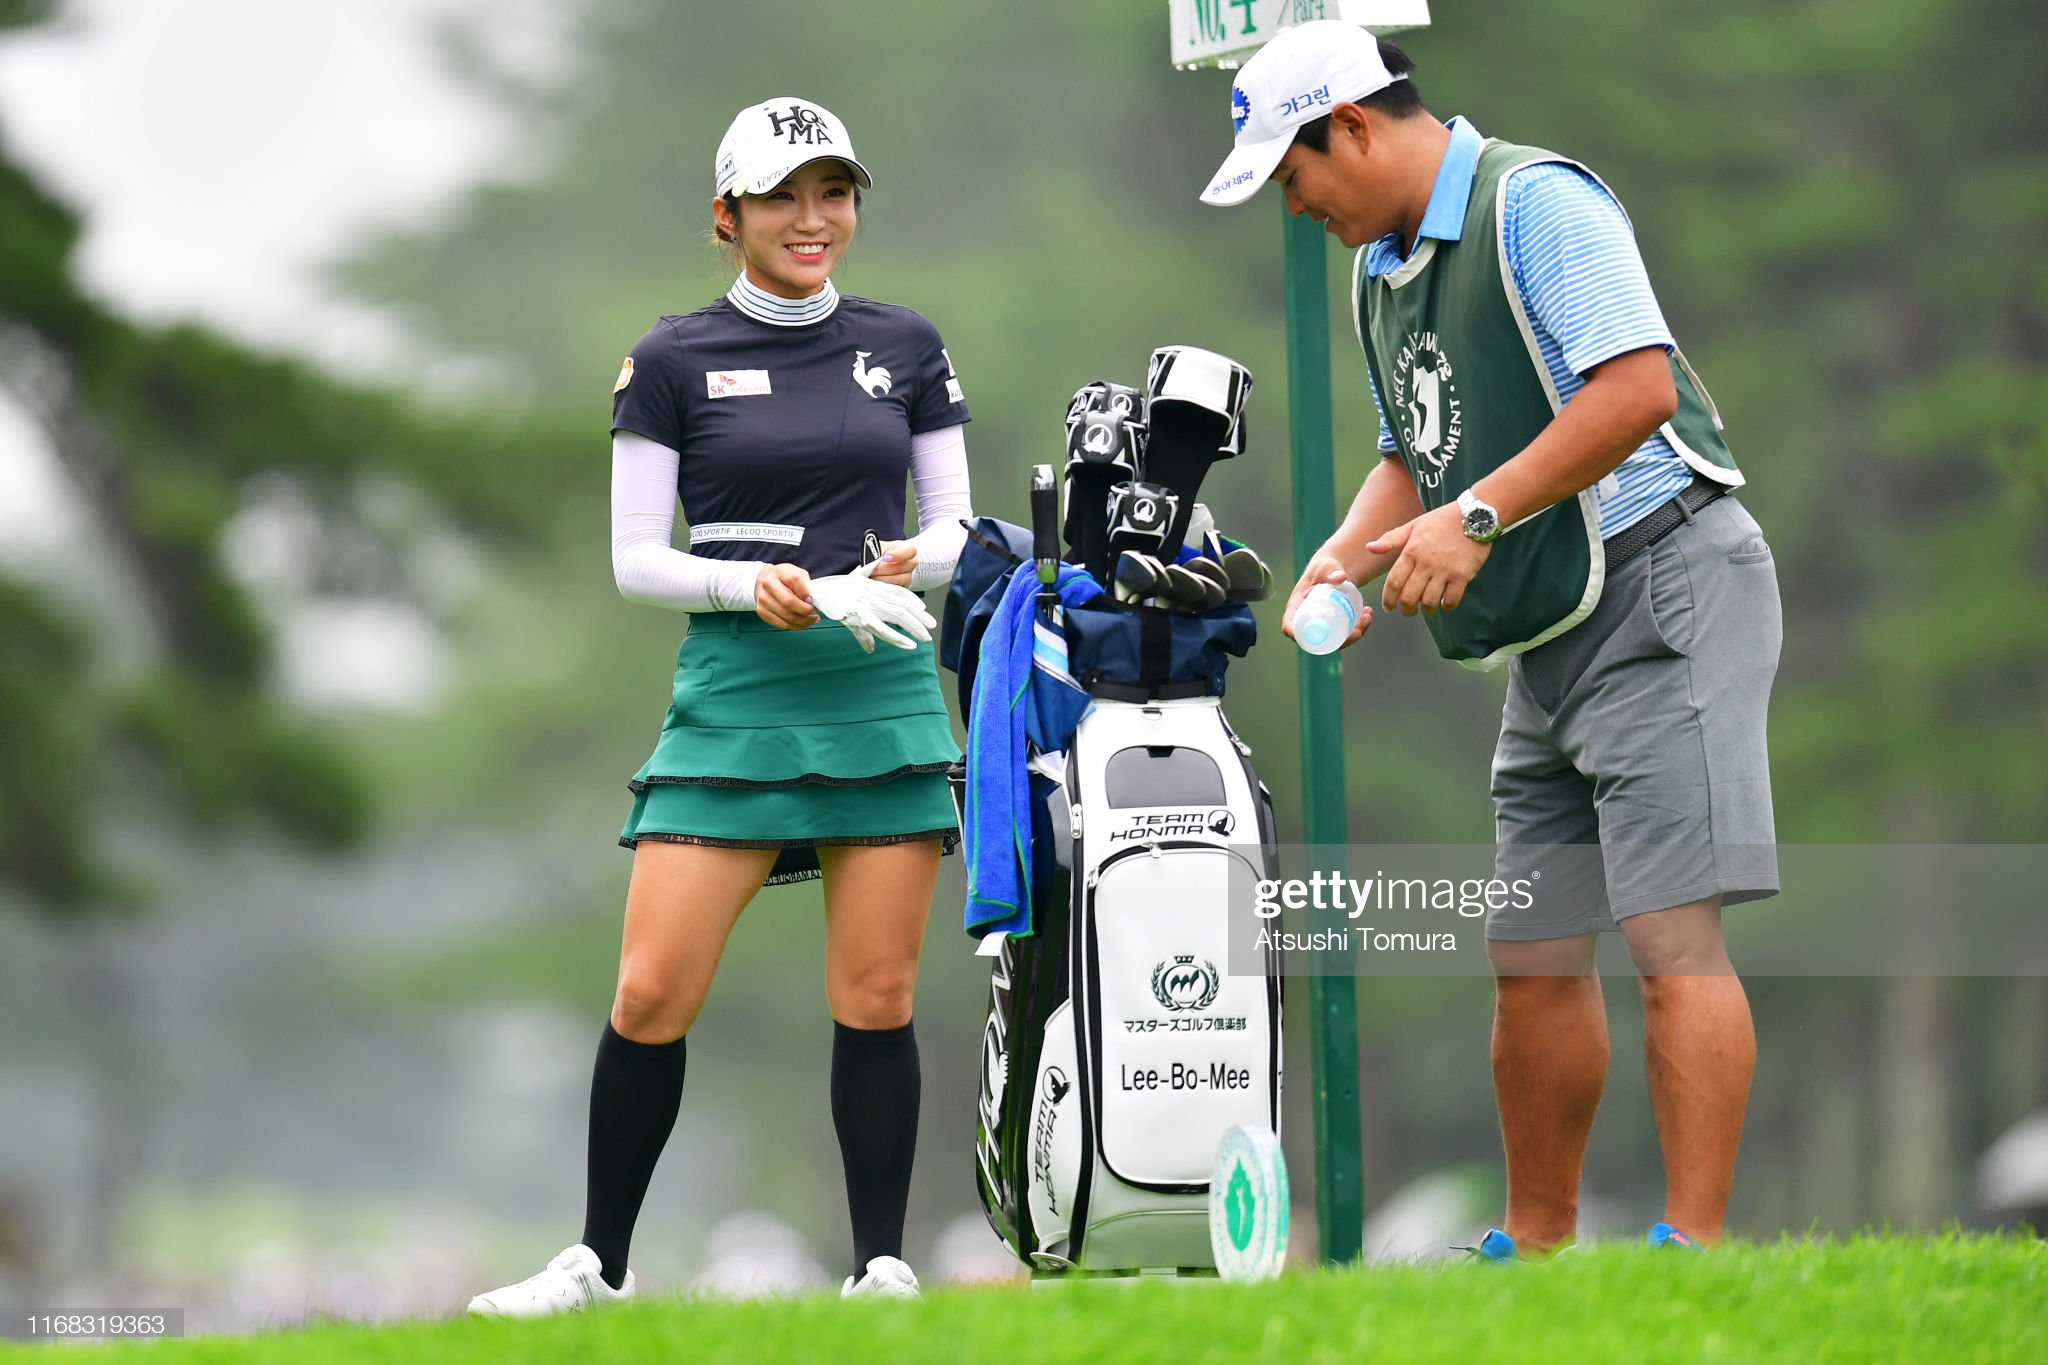 https://media.gettyimages.com/photos/bomee-lee-of-south-korea-smiles-while-talking-with-her-caddie-on-the-picture-id1168319363?s=2048x2048